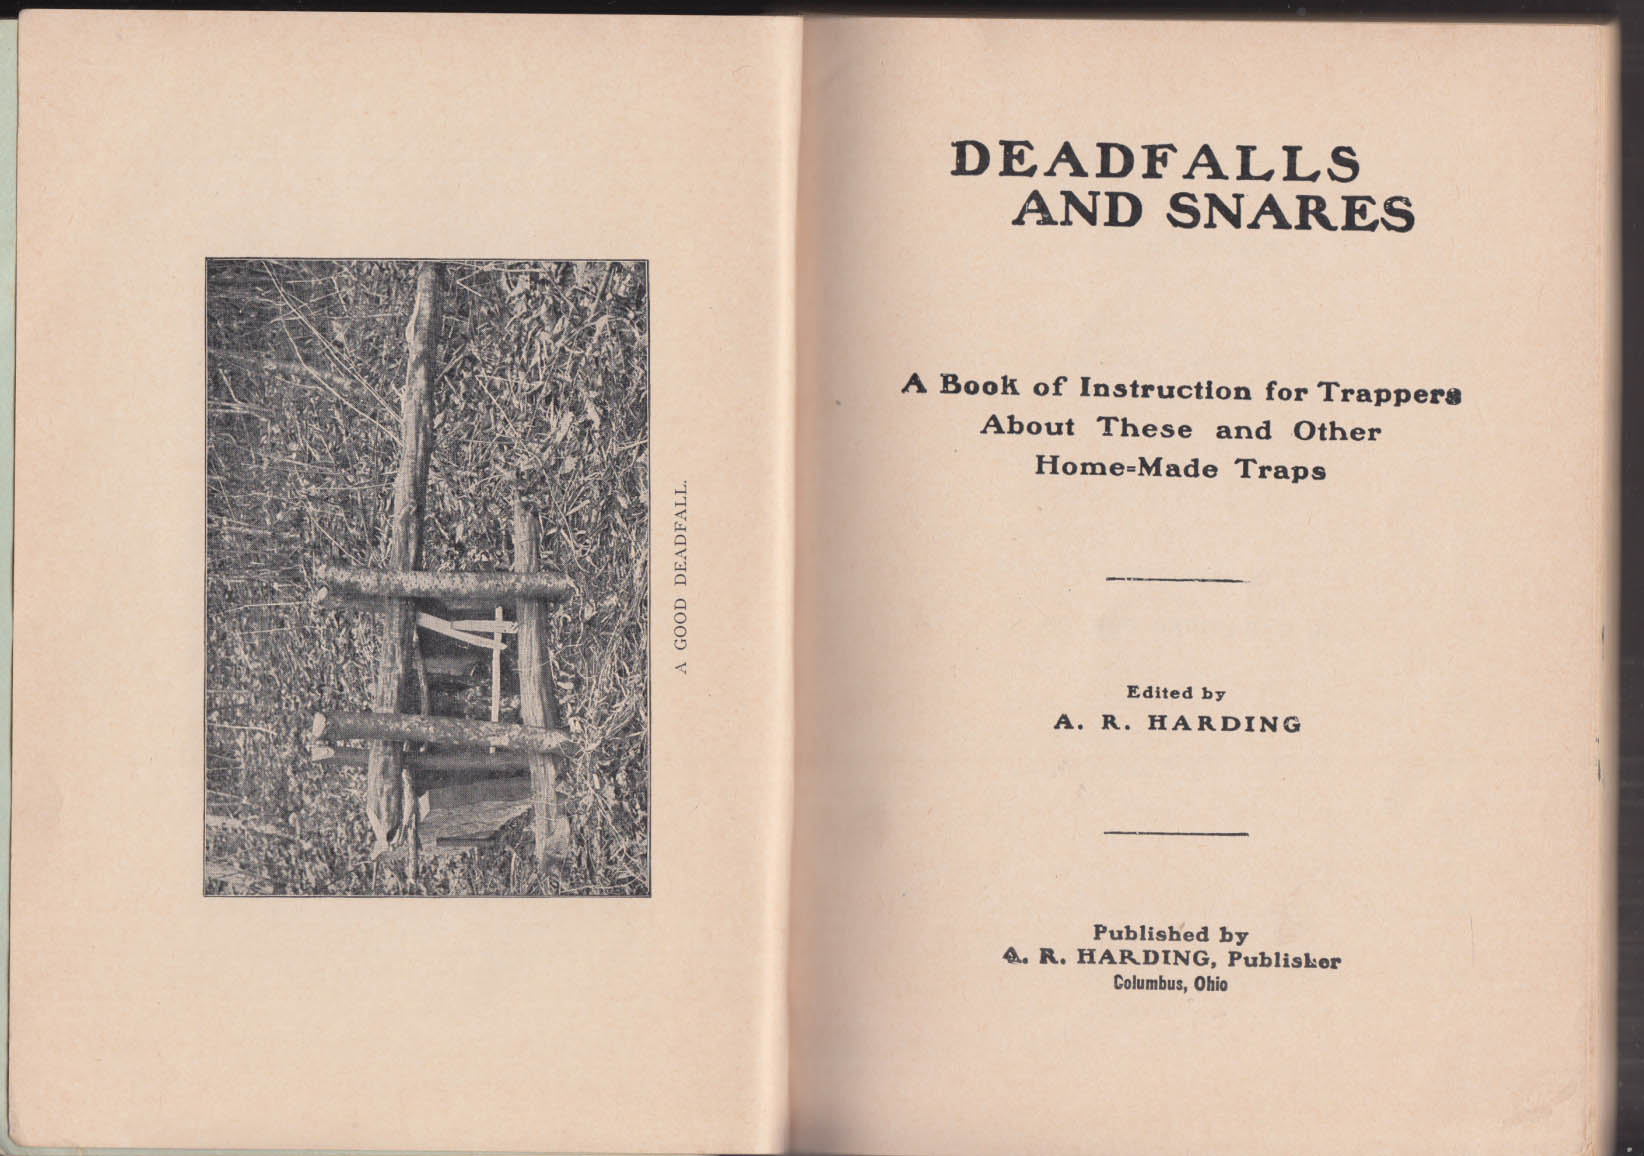 A R Harding: Deadfalls & Snares for Fur Trappers book 1935